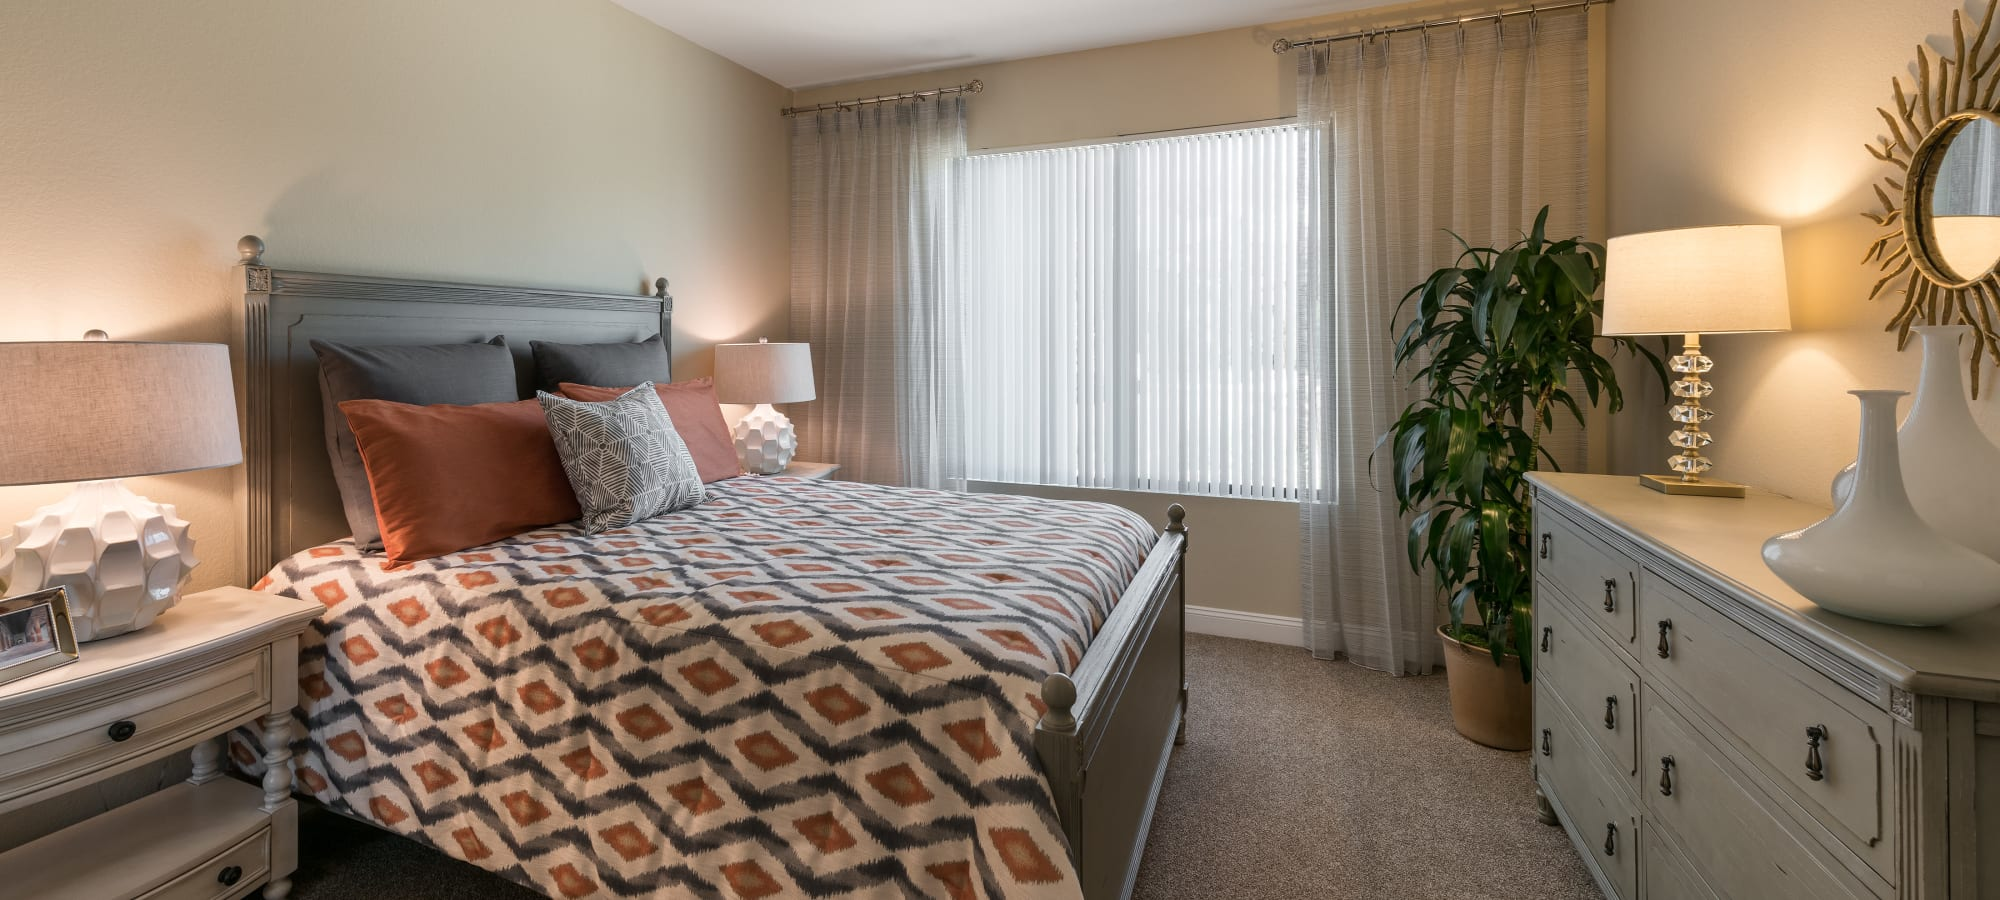 Well-decorated guest bedroom in model home at San Piedra in Mesa, Arizona